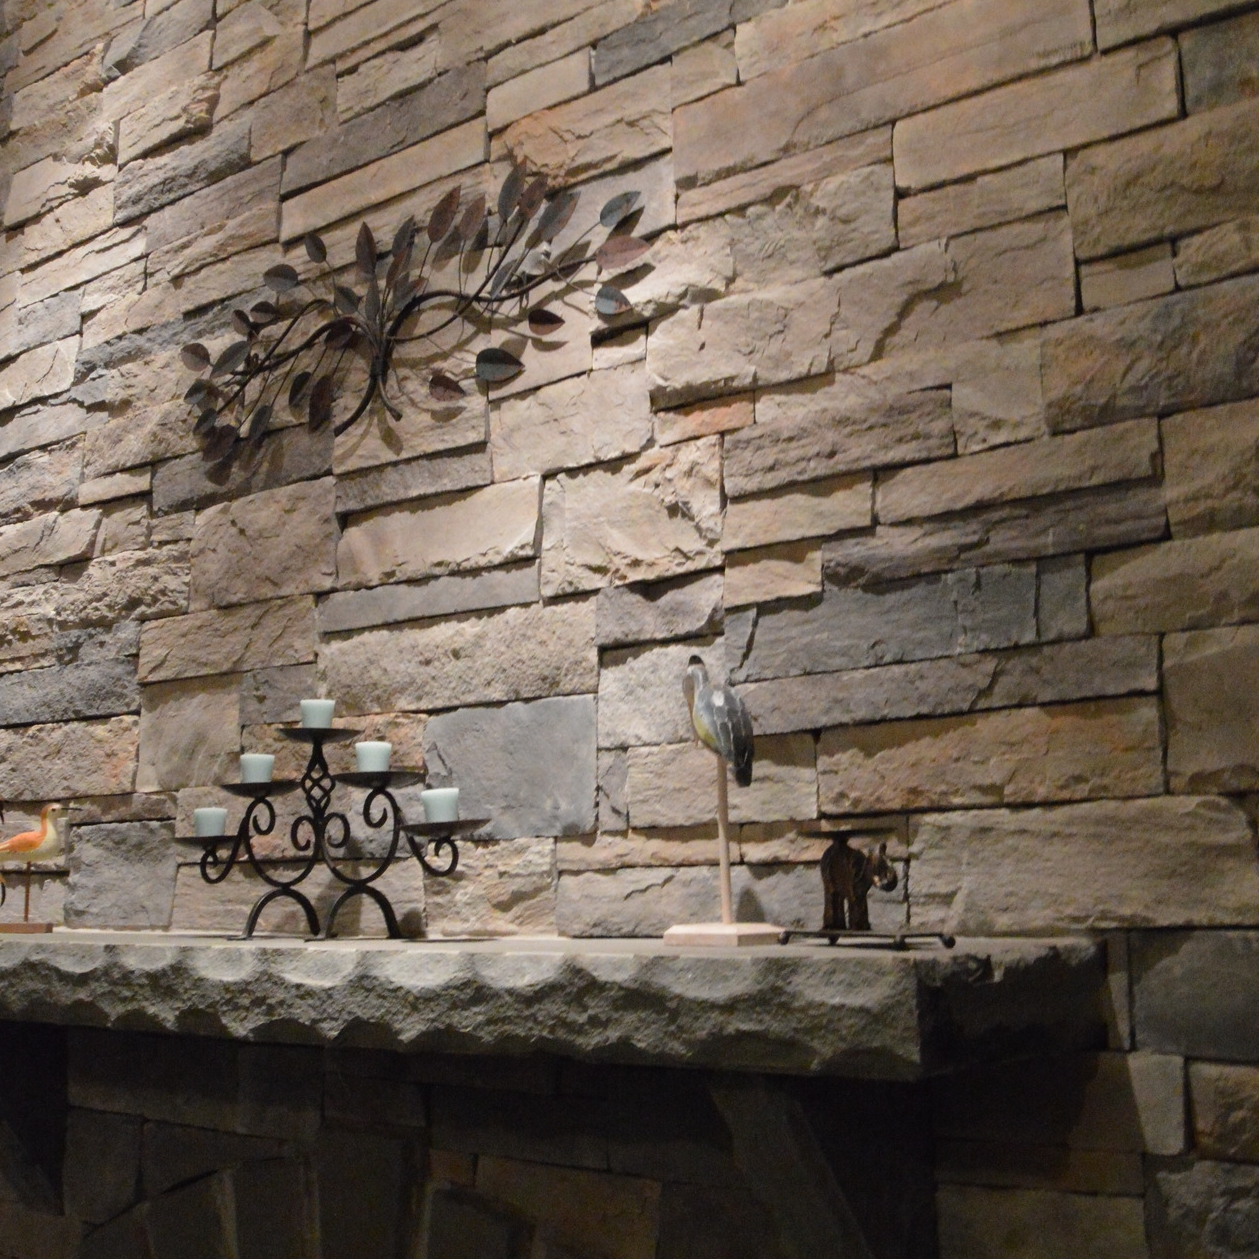 Fireplace finished with manufactured veneer stone and a custom cut and finished bluestone mantel and hearth. The Landworx team began with an unfinished bluestone slab that spanned over 7' in length.